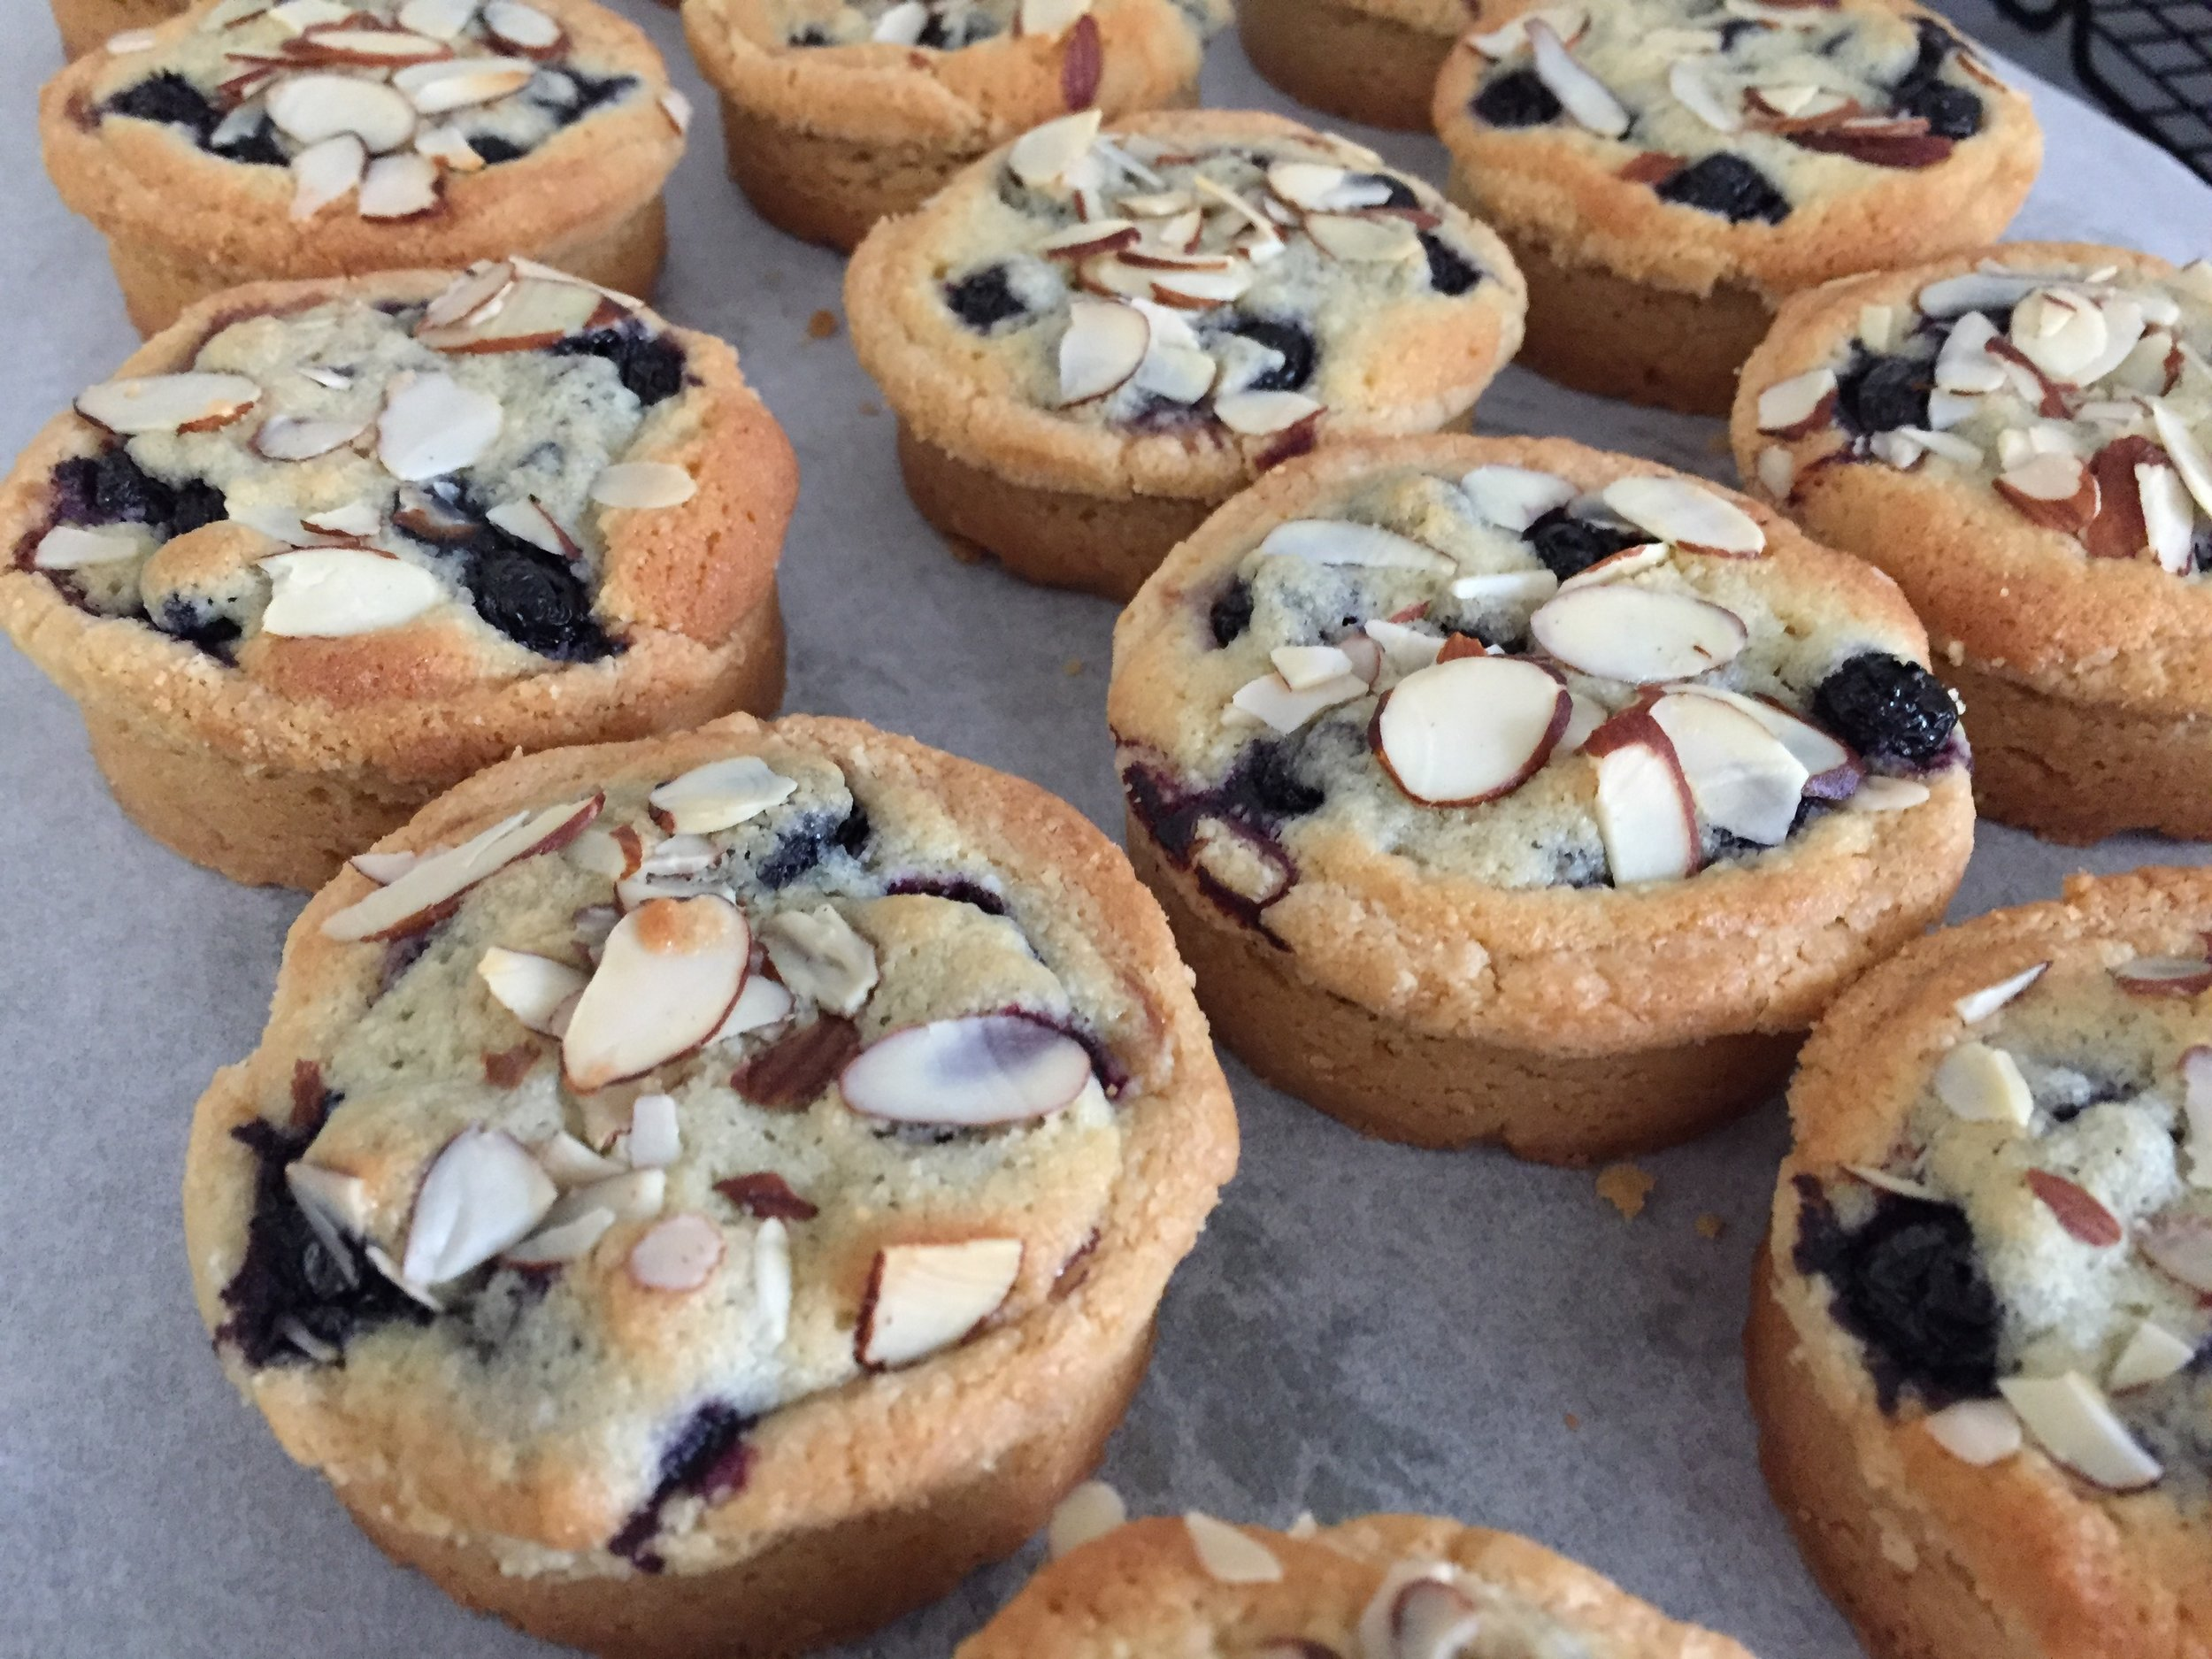 Breton blueberry almond tarts